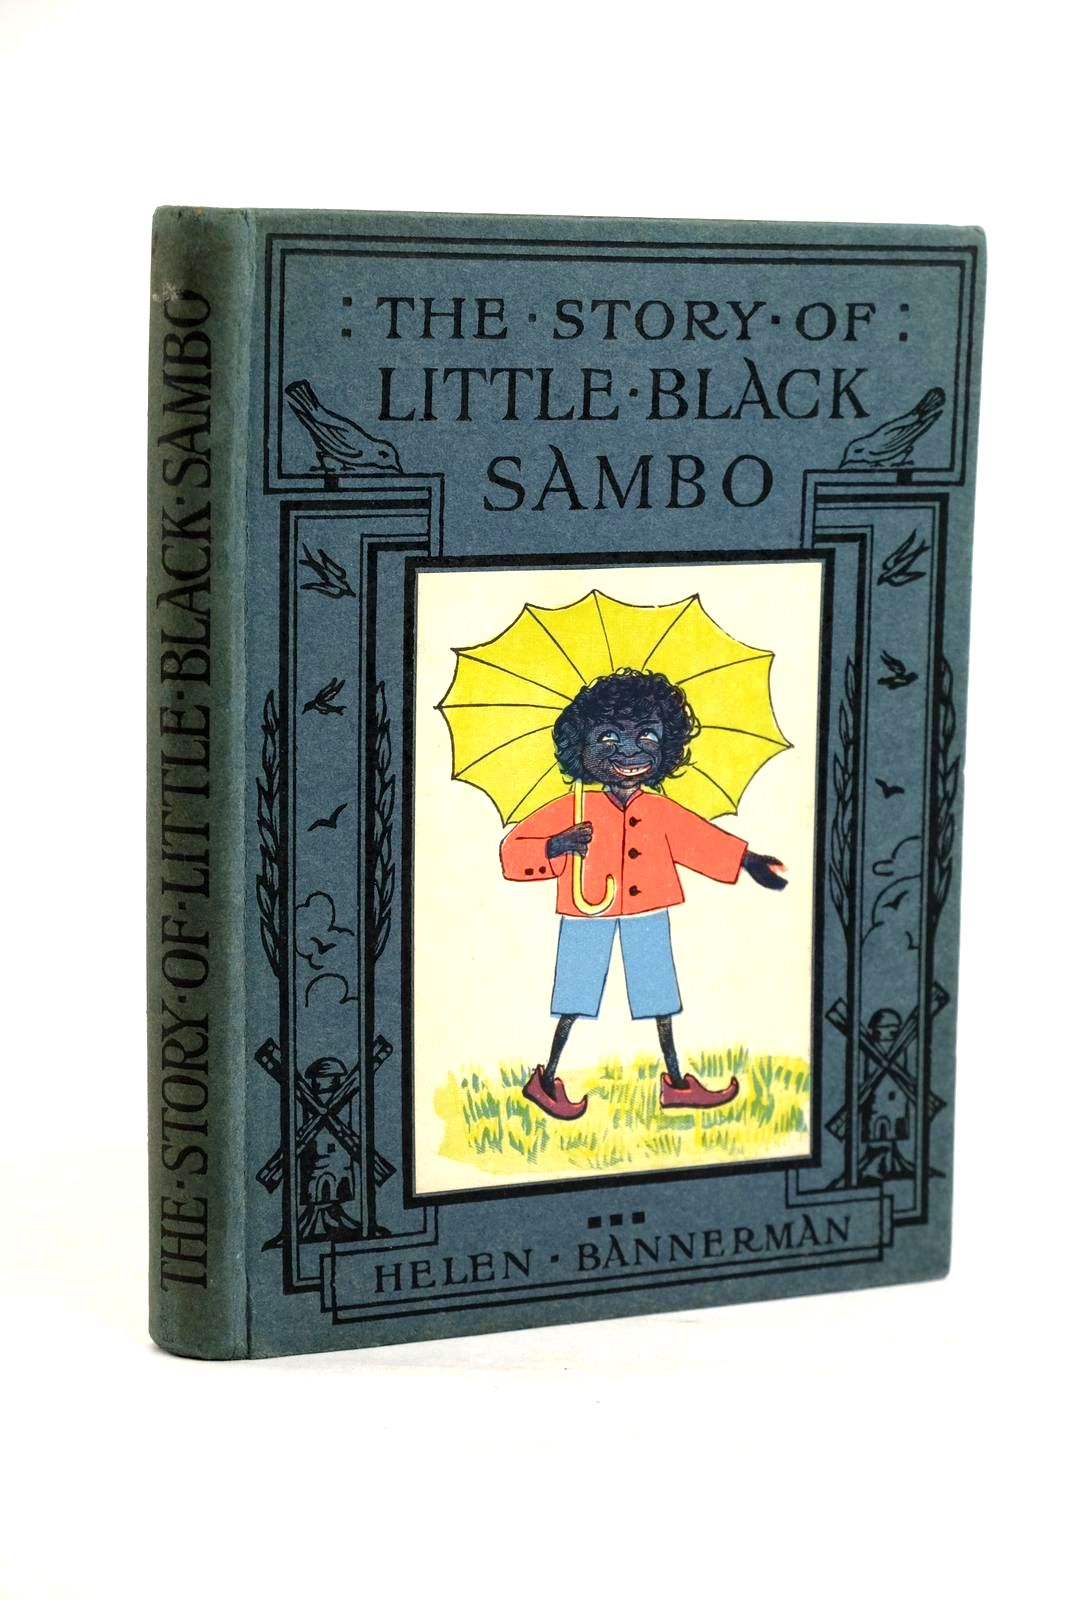 Photo of THE STORY OF LITTLE BLACK SAMBO written by Bannerman, Helen illustrated by Bannerman, Helen published by Chatto & Windus (STOCK CODE: 1320380)  for sale by Stella & Rose's Books